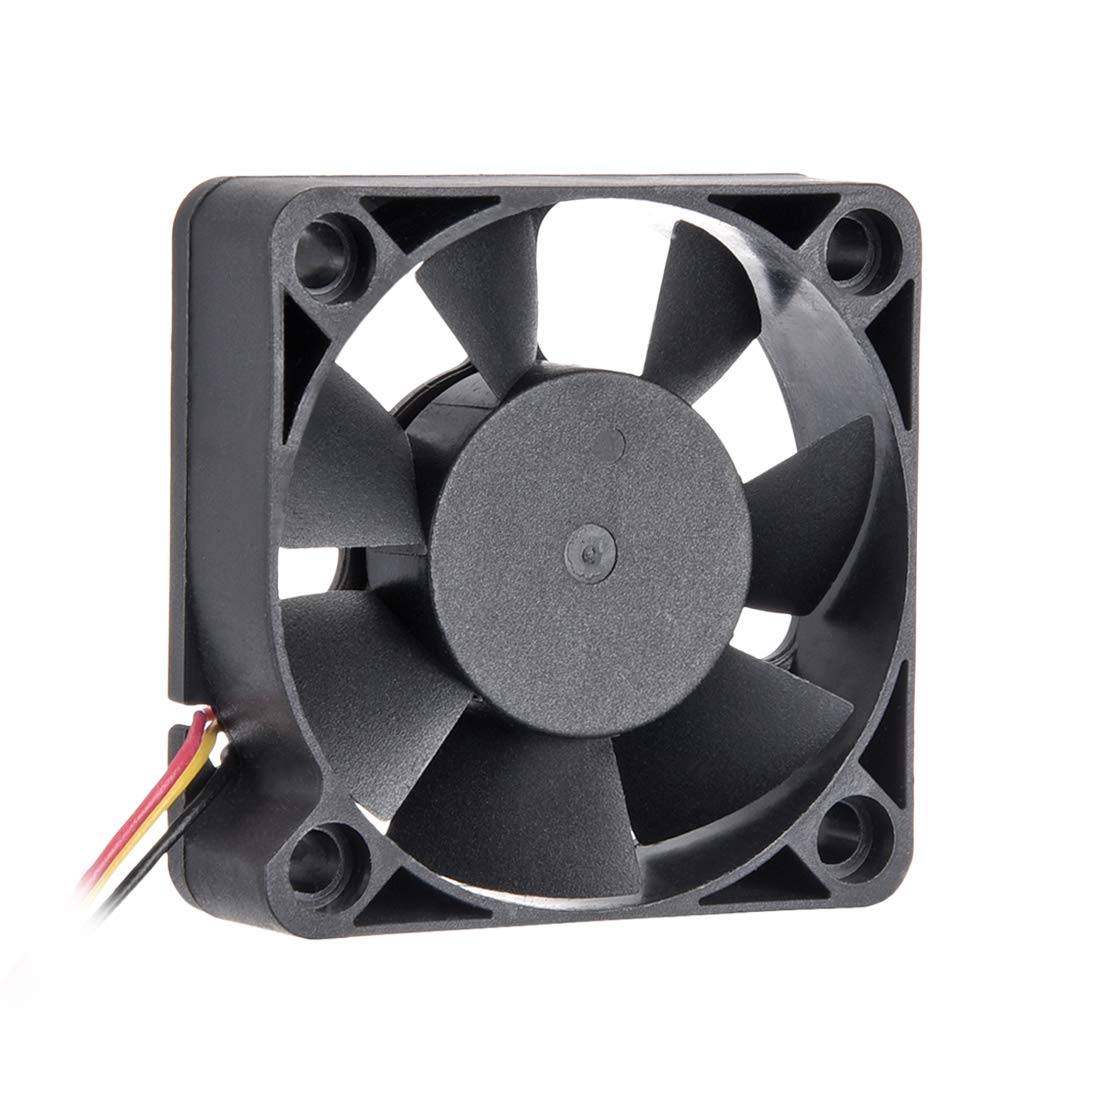 uxcell SNOWFAN Authorized 50mm x 50mm x 15mm 12V Brushless DC Cooling Fan 0323